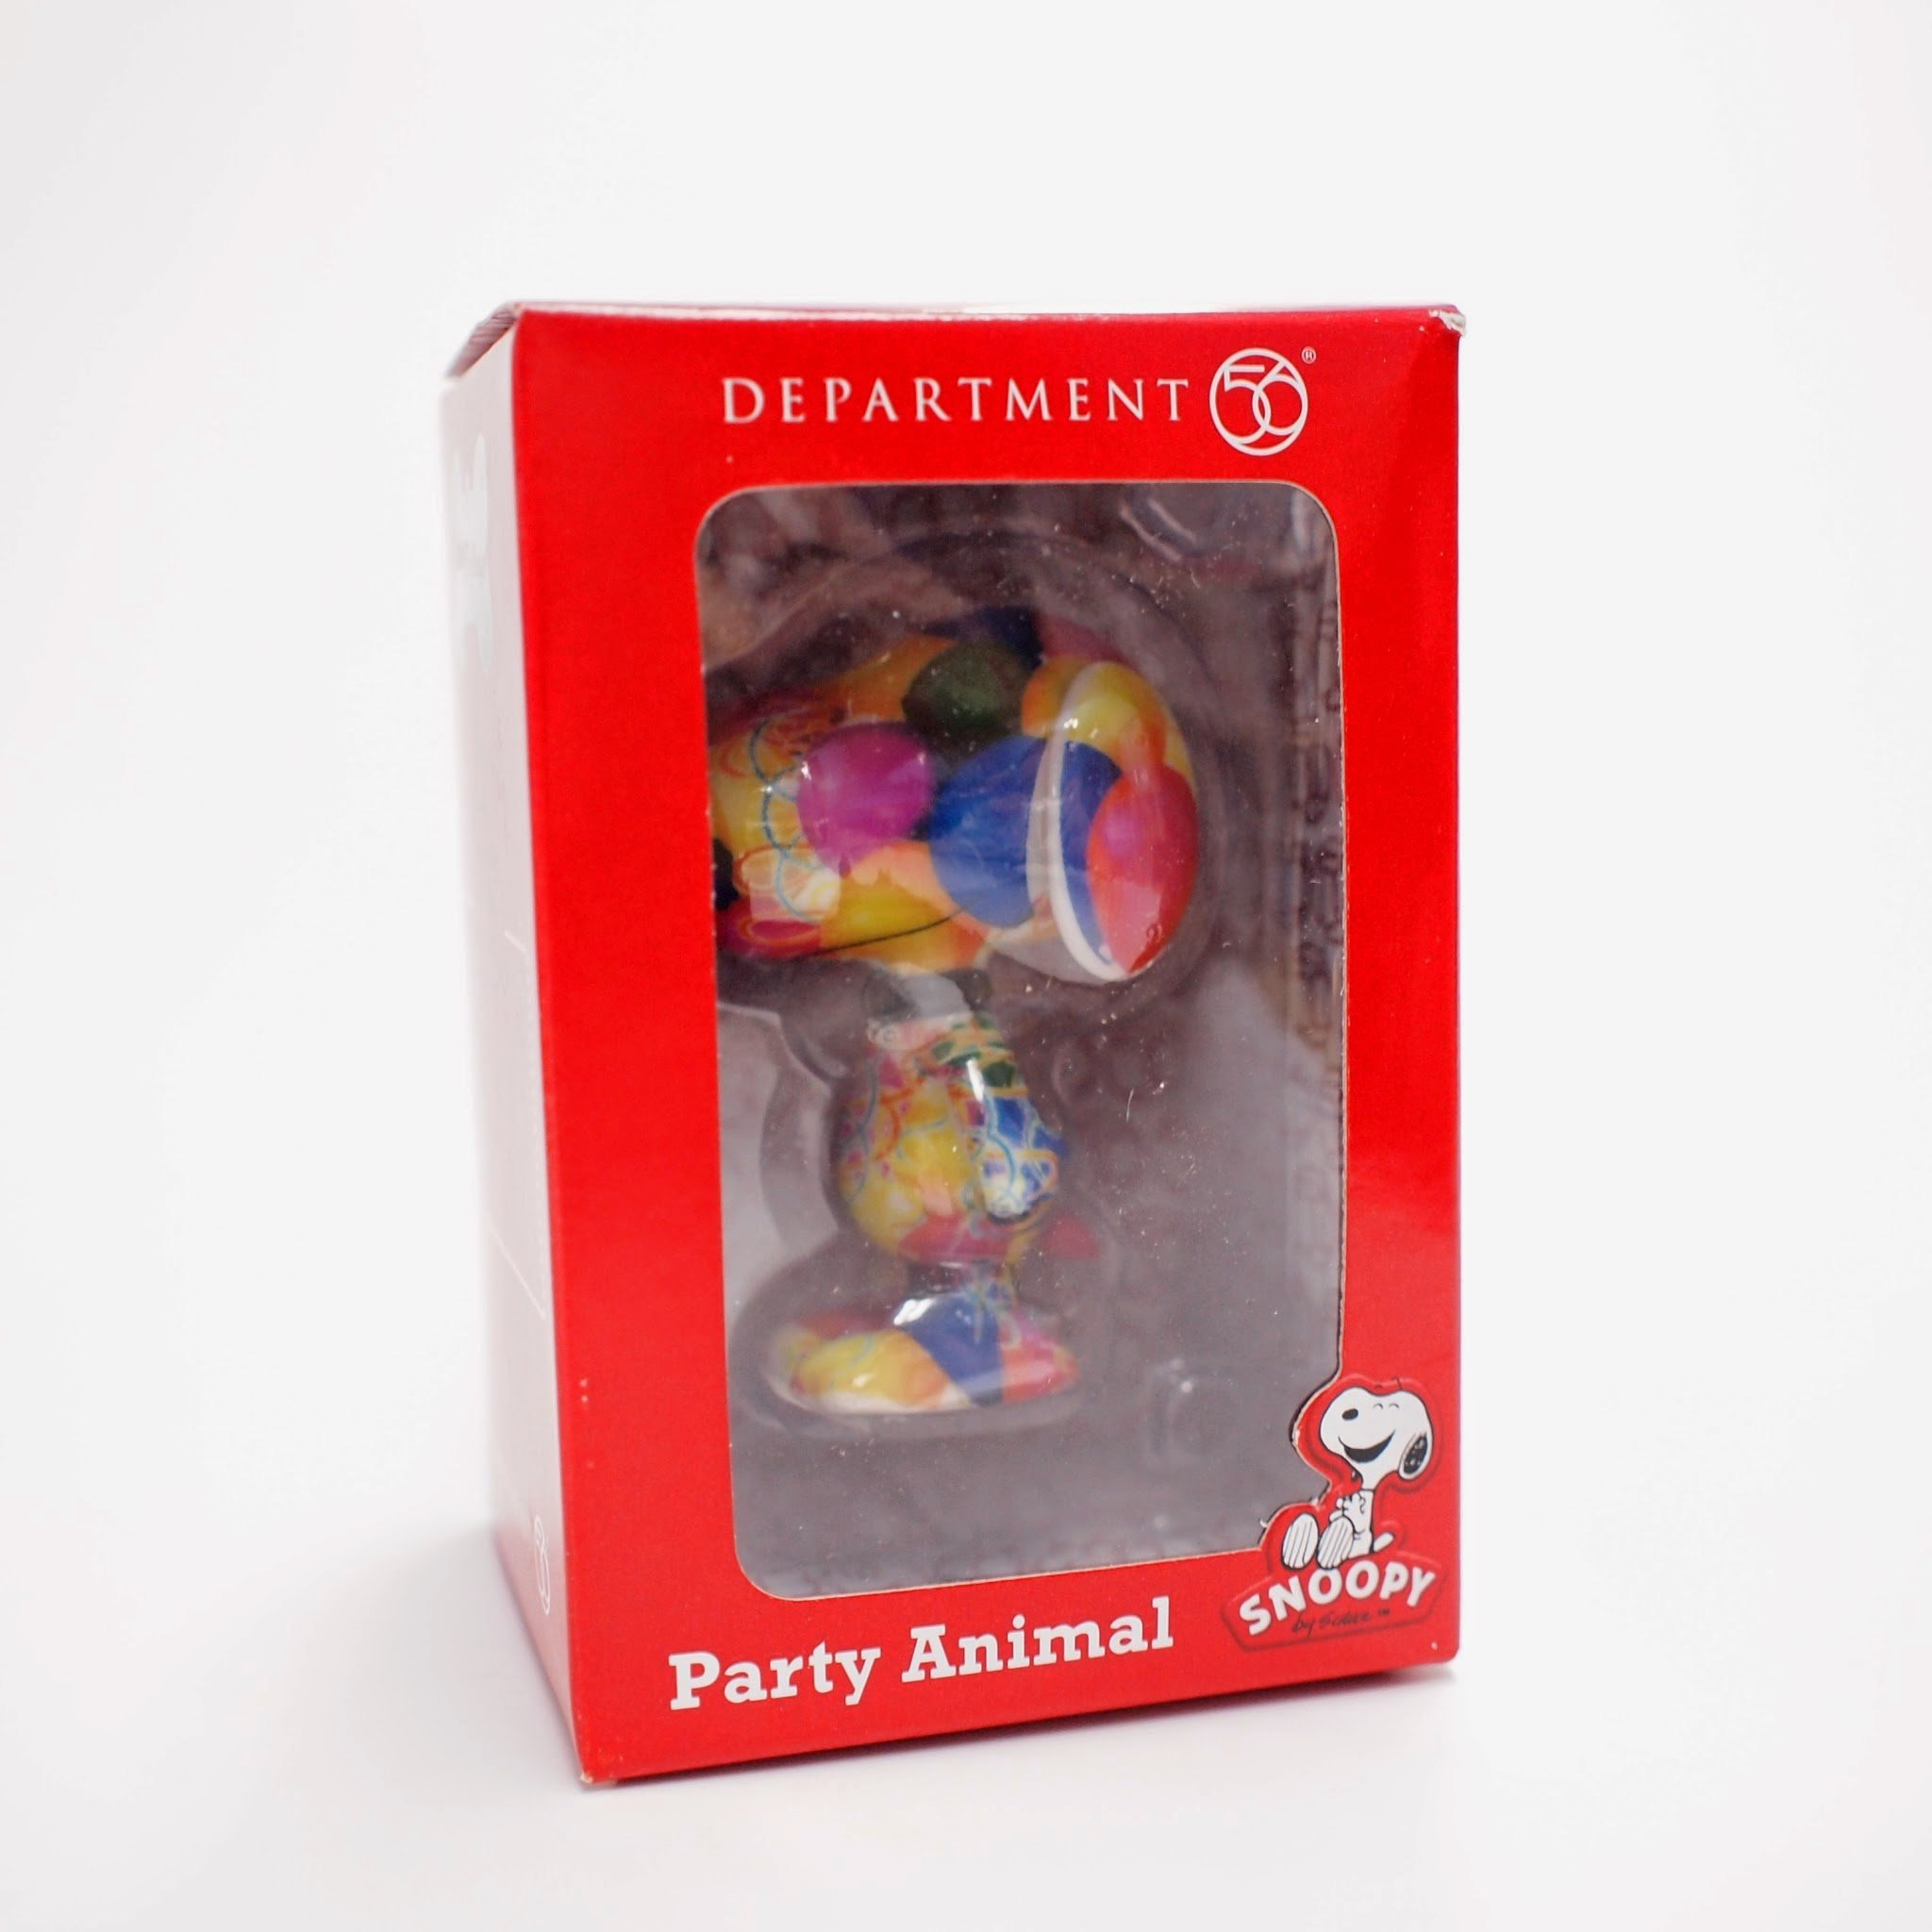 Department 56 Peanuts Party Animal Figurine, 3 inch